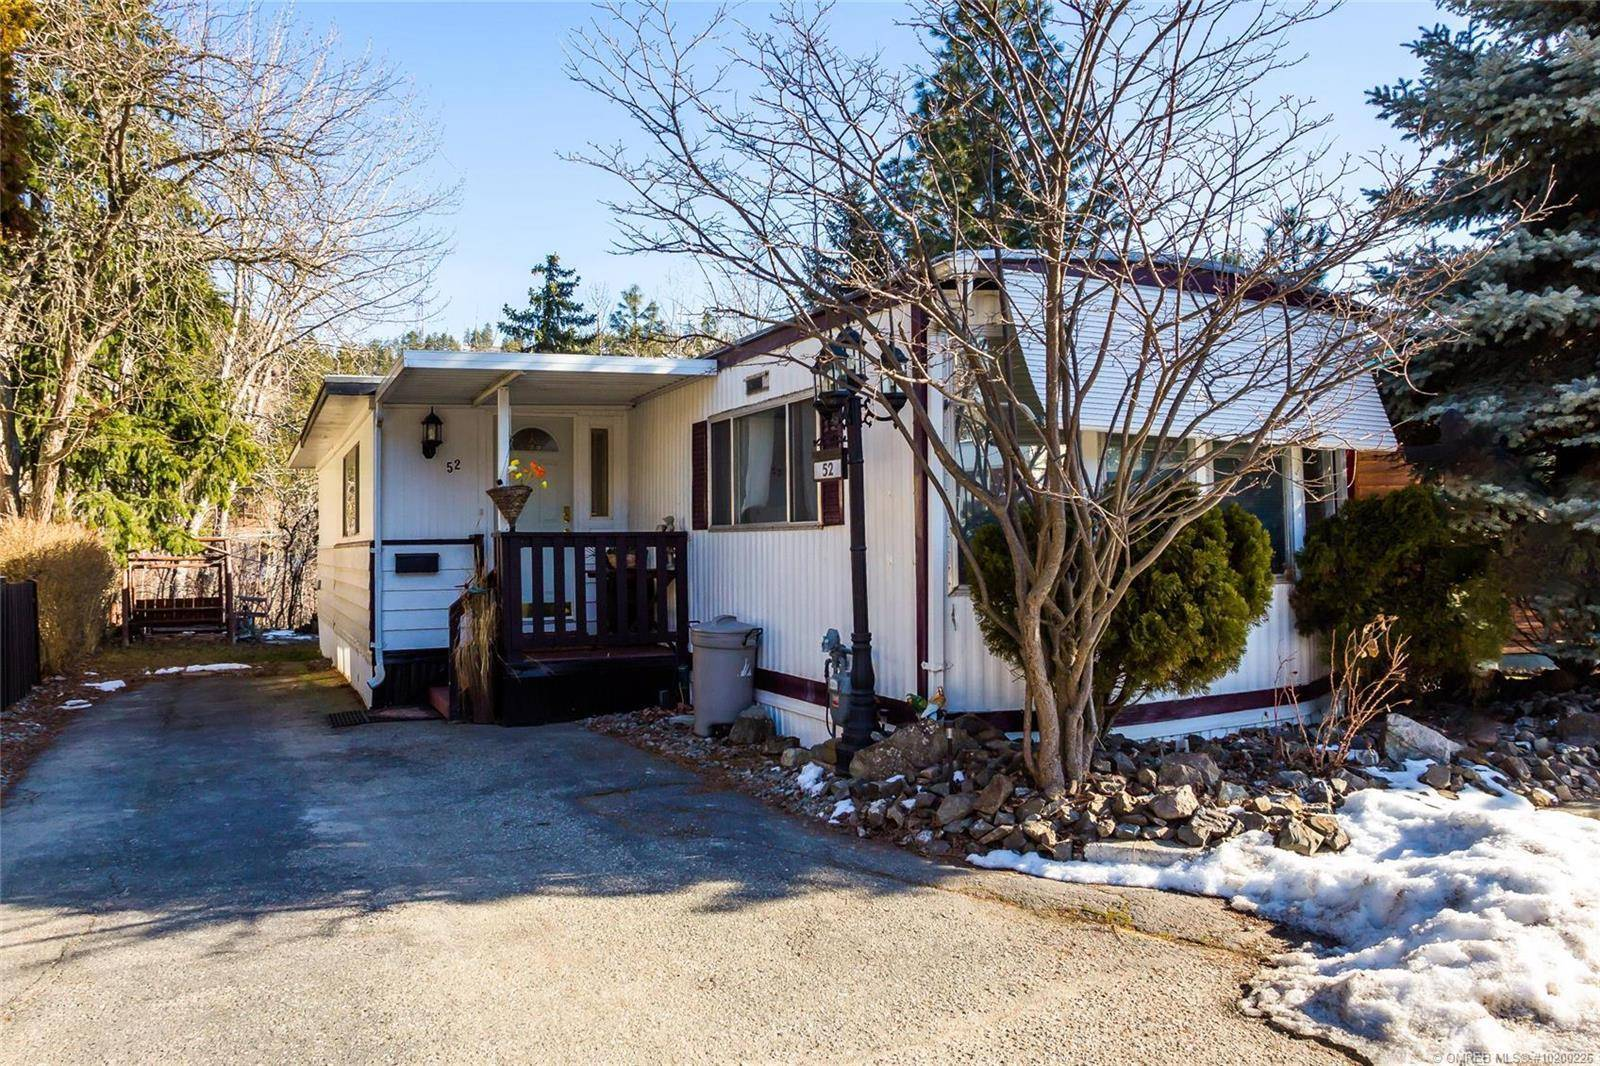 Home for sale at 1999 Highway 97 Hy South Unit 52 West Kelowna British Columbia - MLS: 10200226